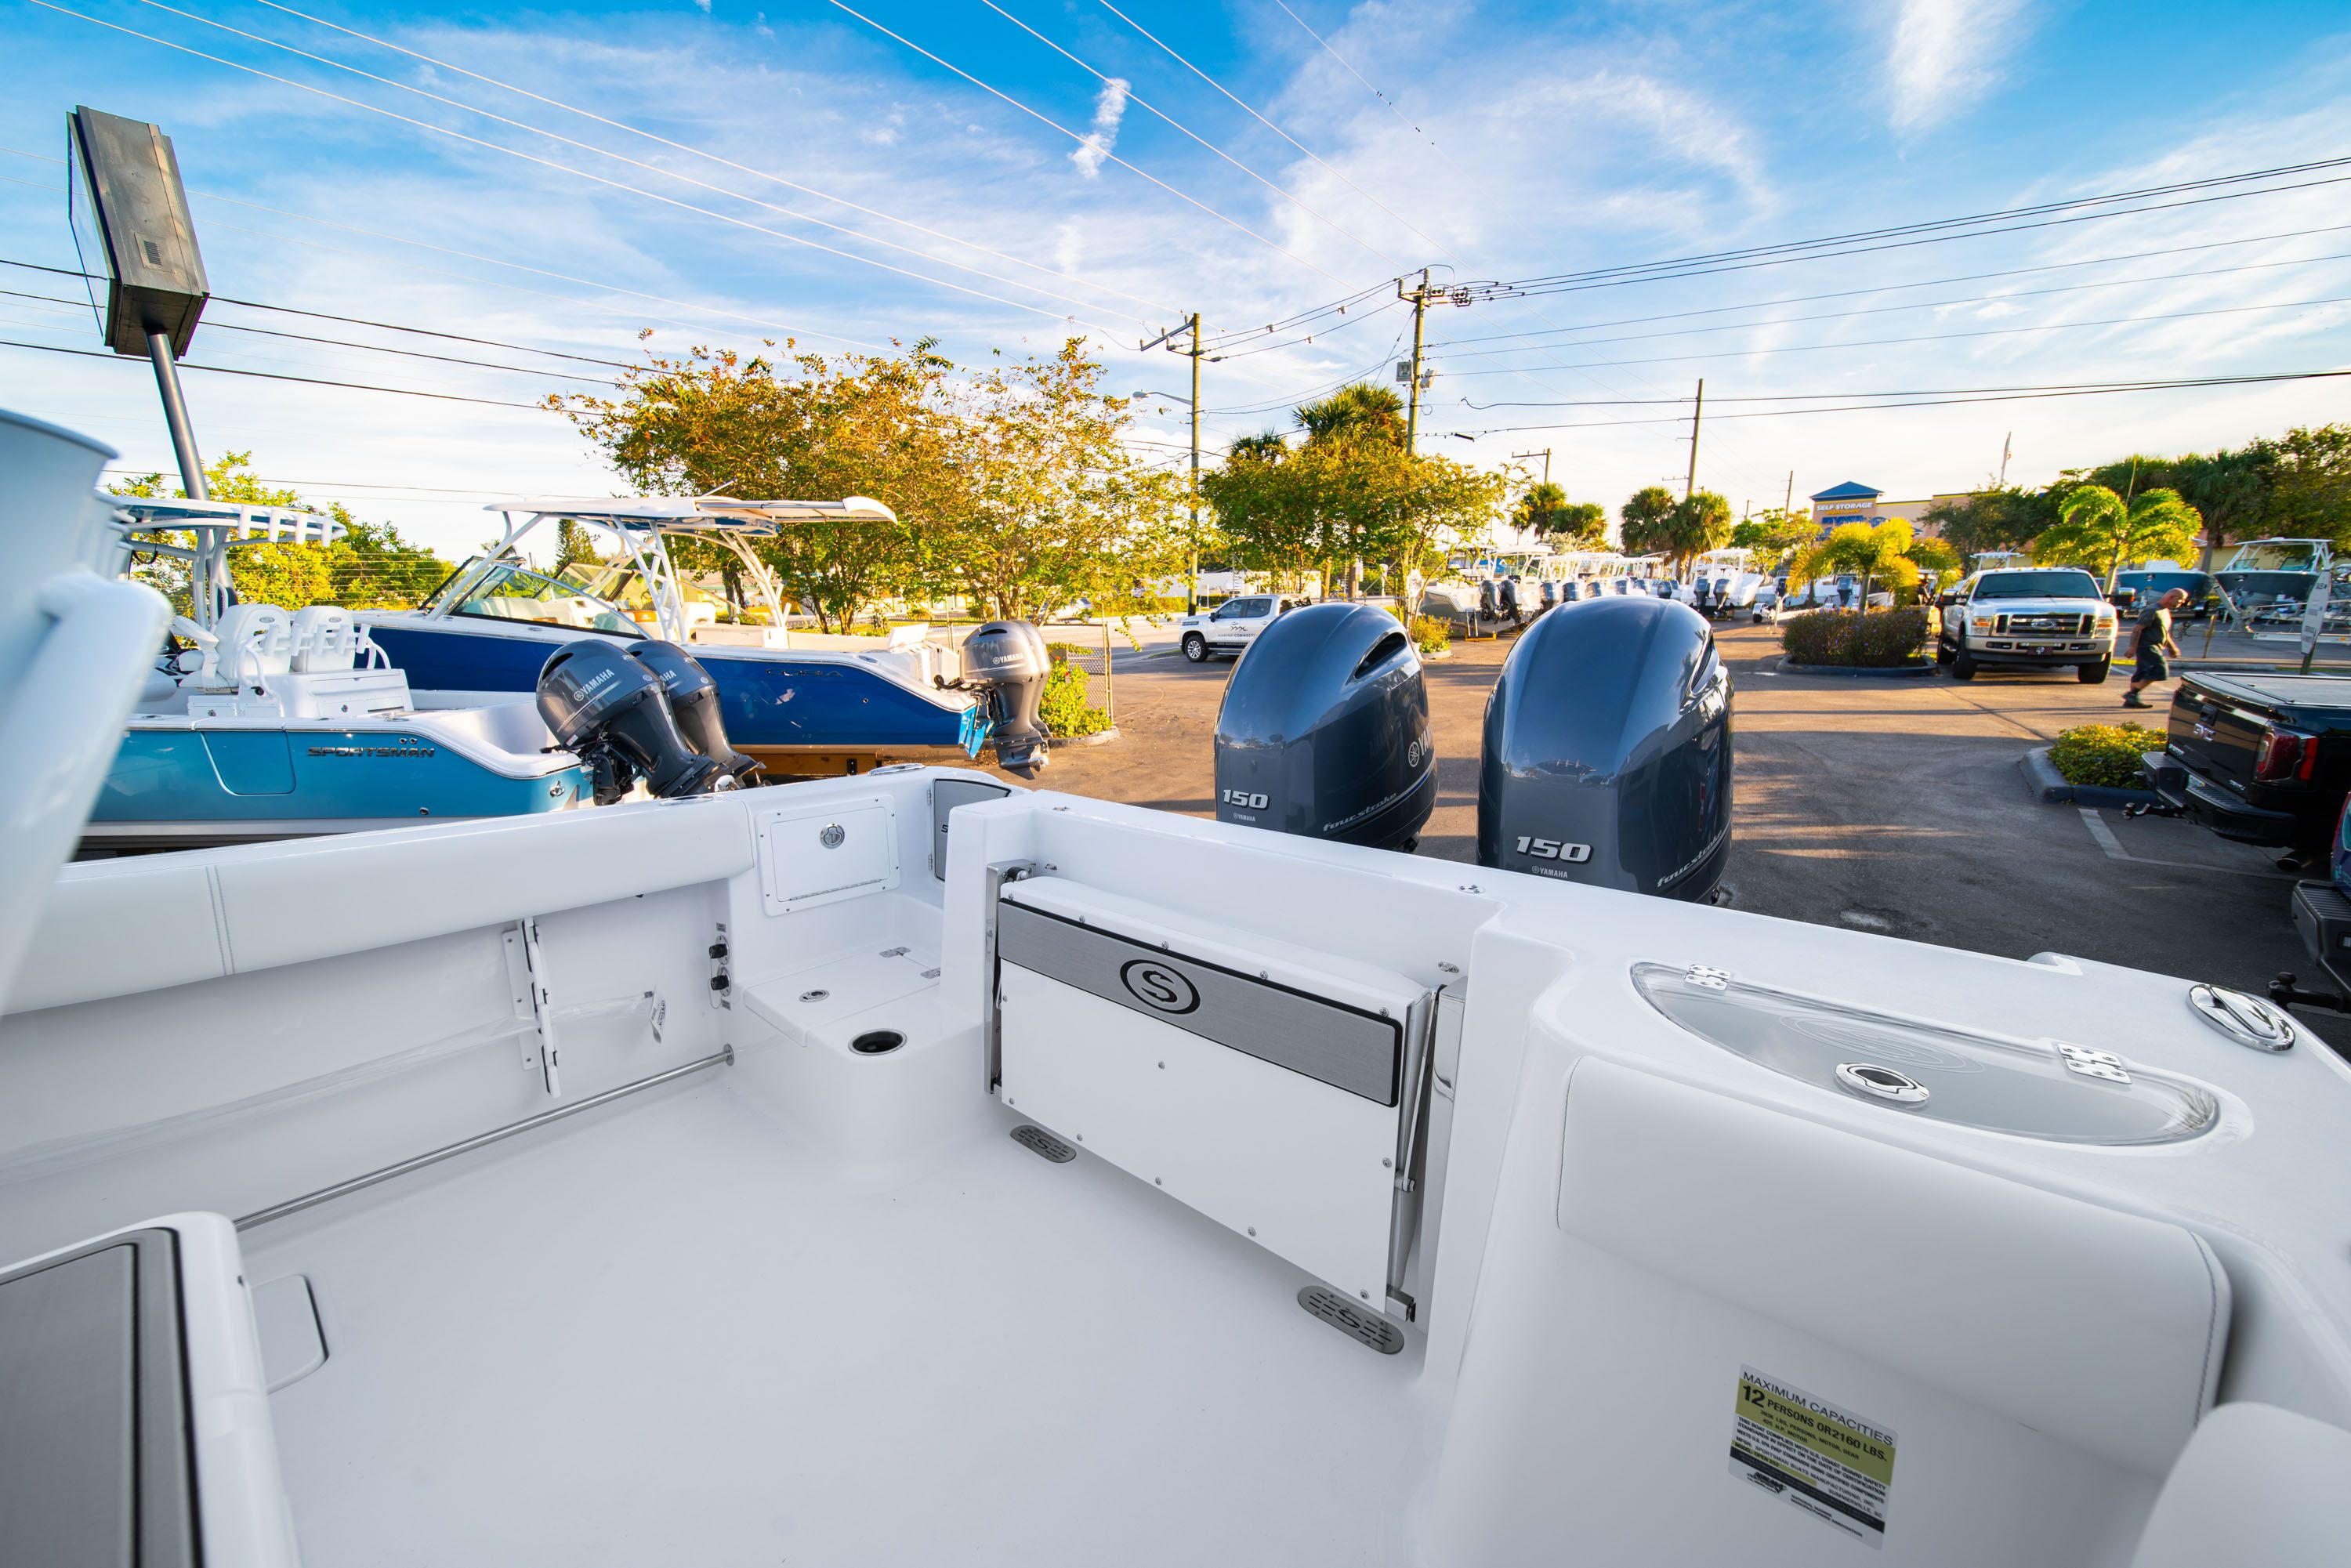 Thumbnail 15 for New 2020 Sportsman Open 252 Center Console boat for sale in West Palm Beach, FL